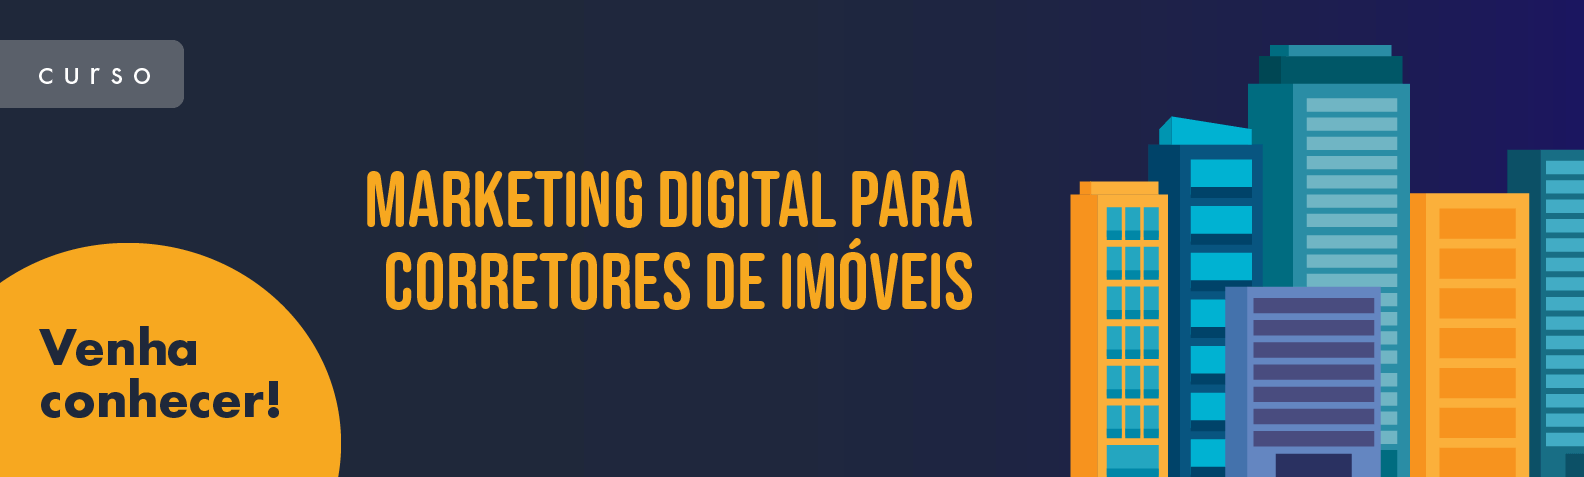 Banner_Curso_Marketing_Digital_Imobiliárias